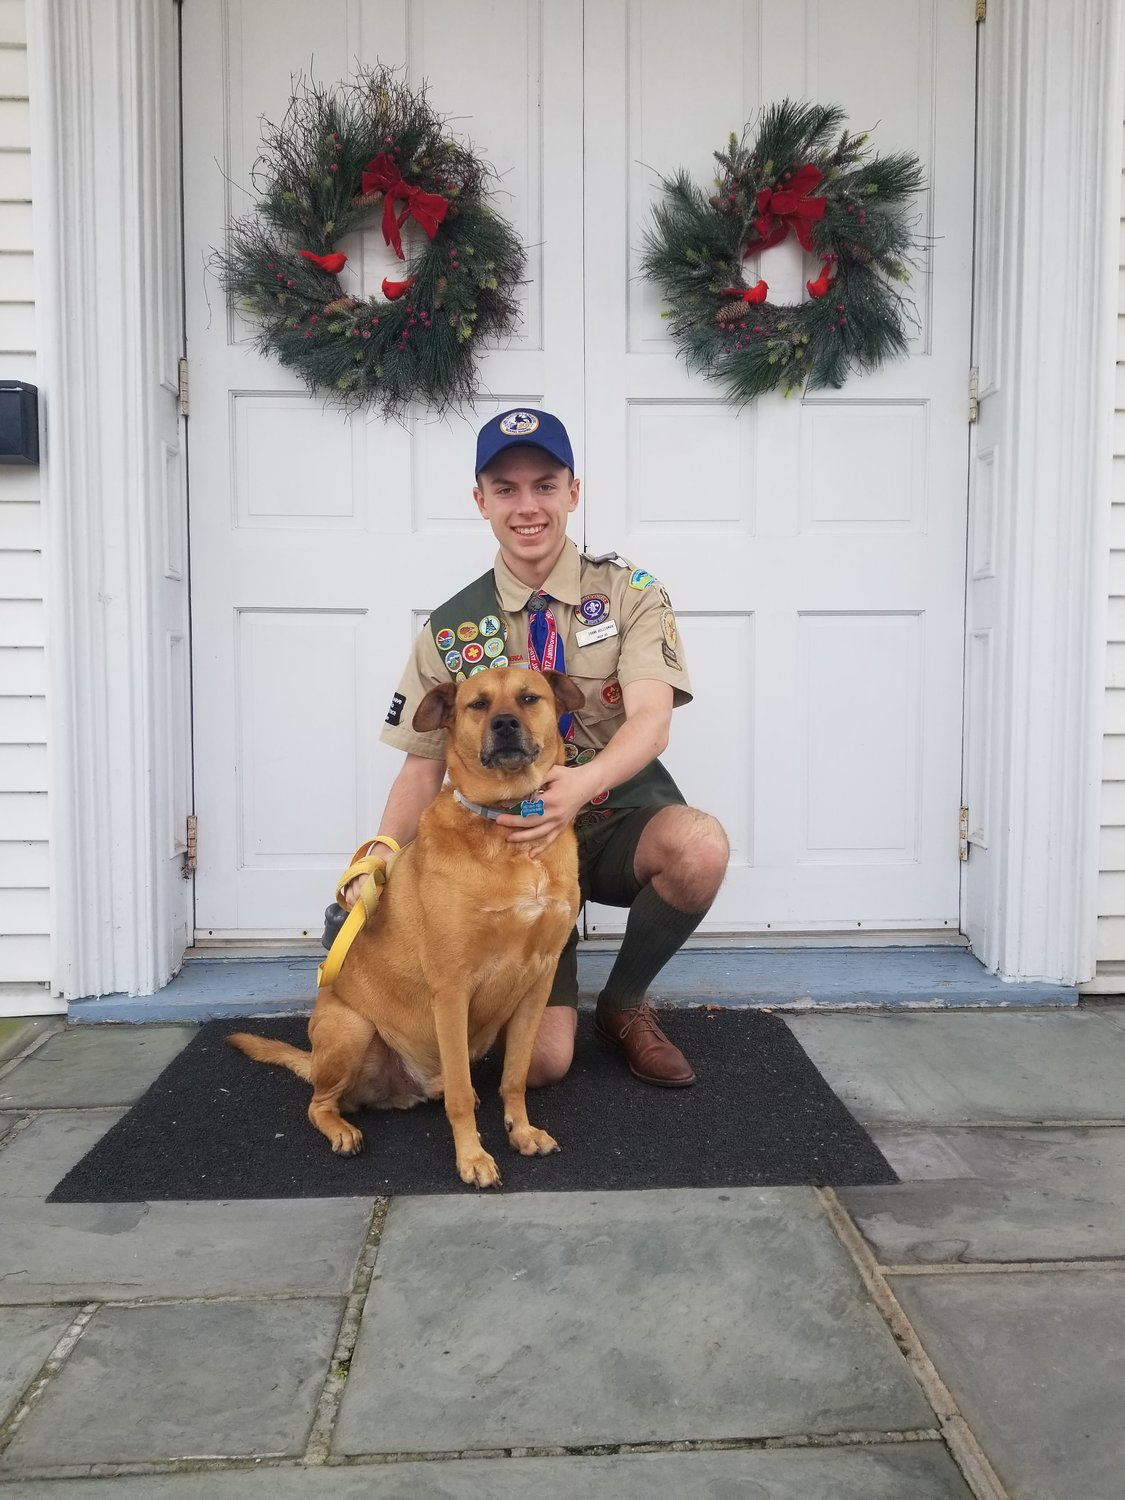 Raising $2,500, Frank, pictured here with his dog, Rocky, and family members worked tirelessly to renovate the common room of the Bayport Methodist Church as his Eagle Scout project.